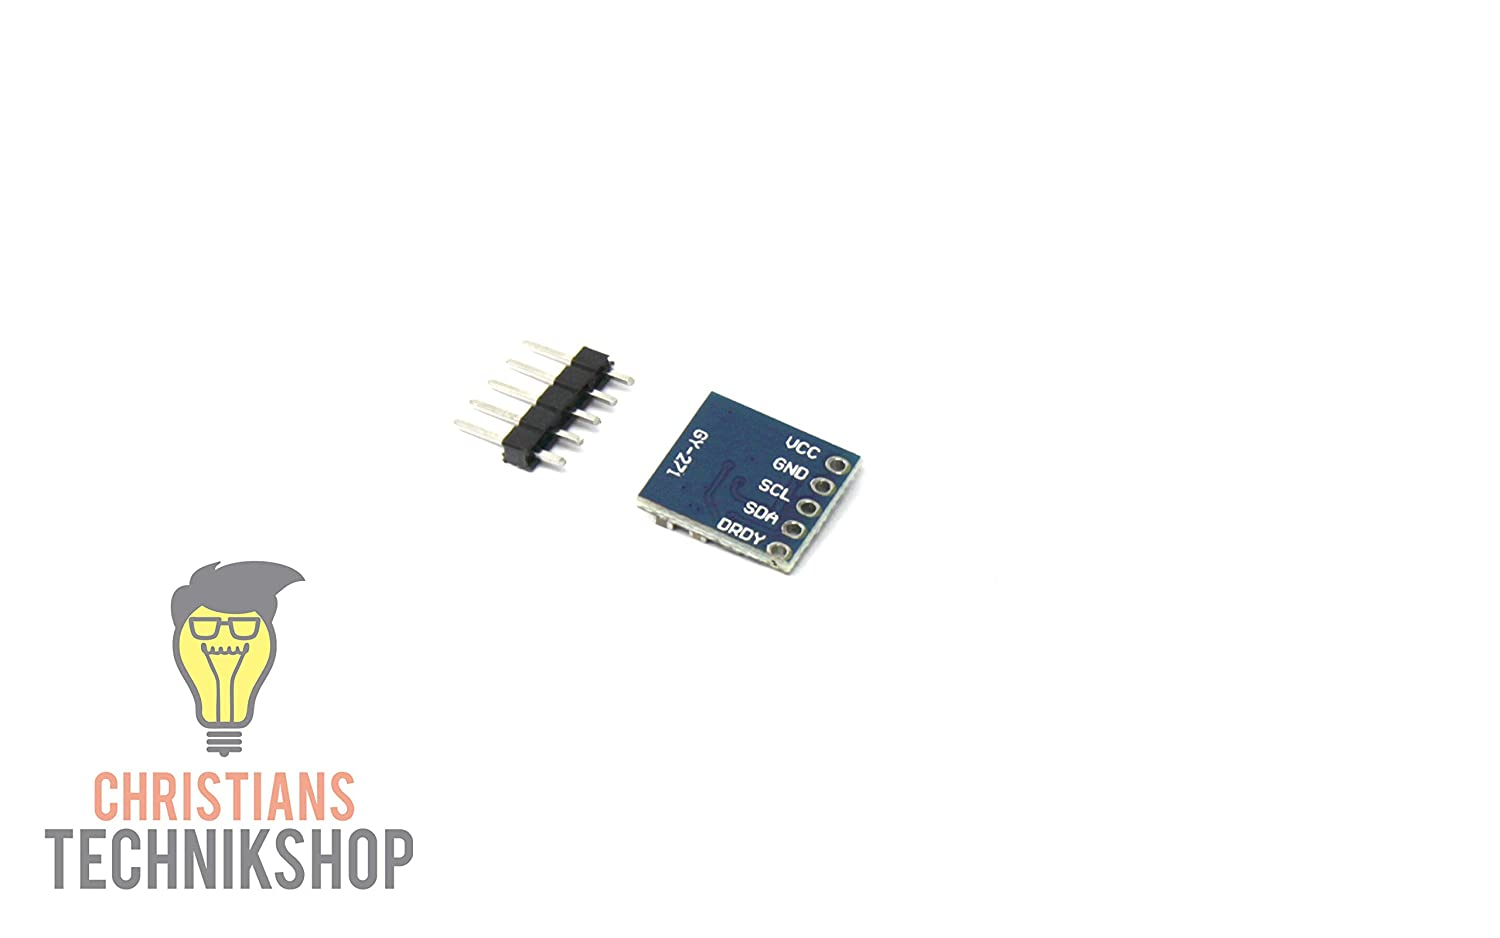 GY-271 Compass Module QMC5883 3-Axis Magnetometer 3-5V